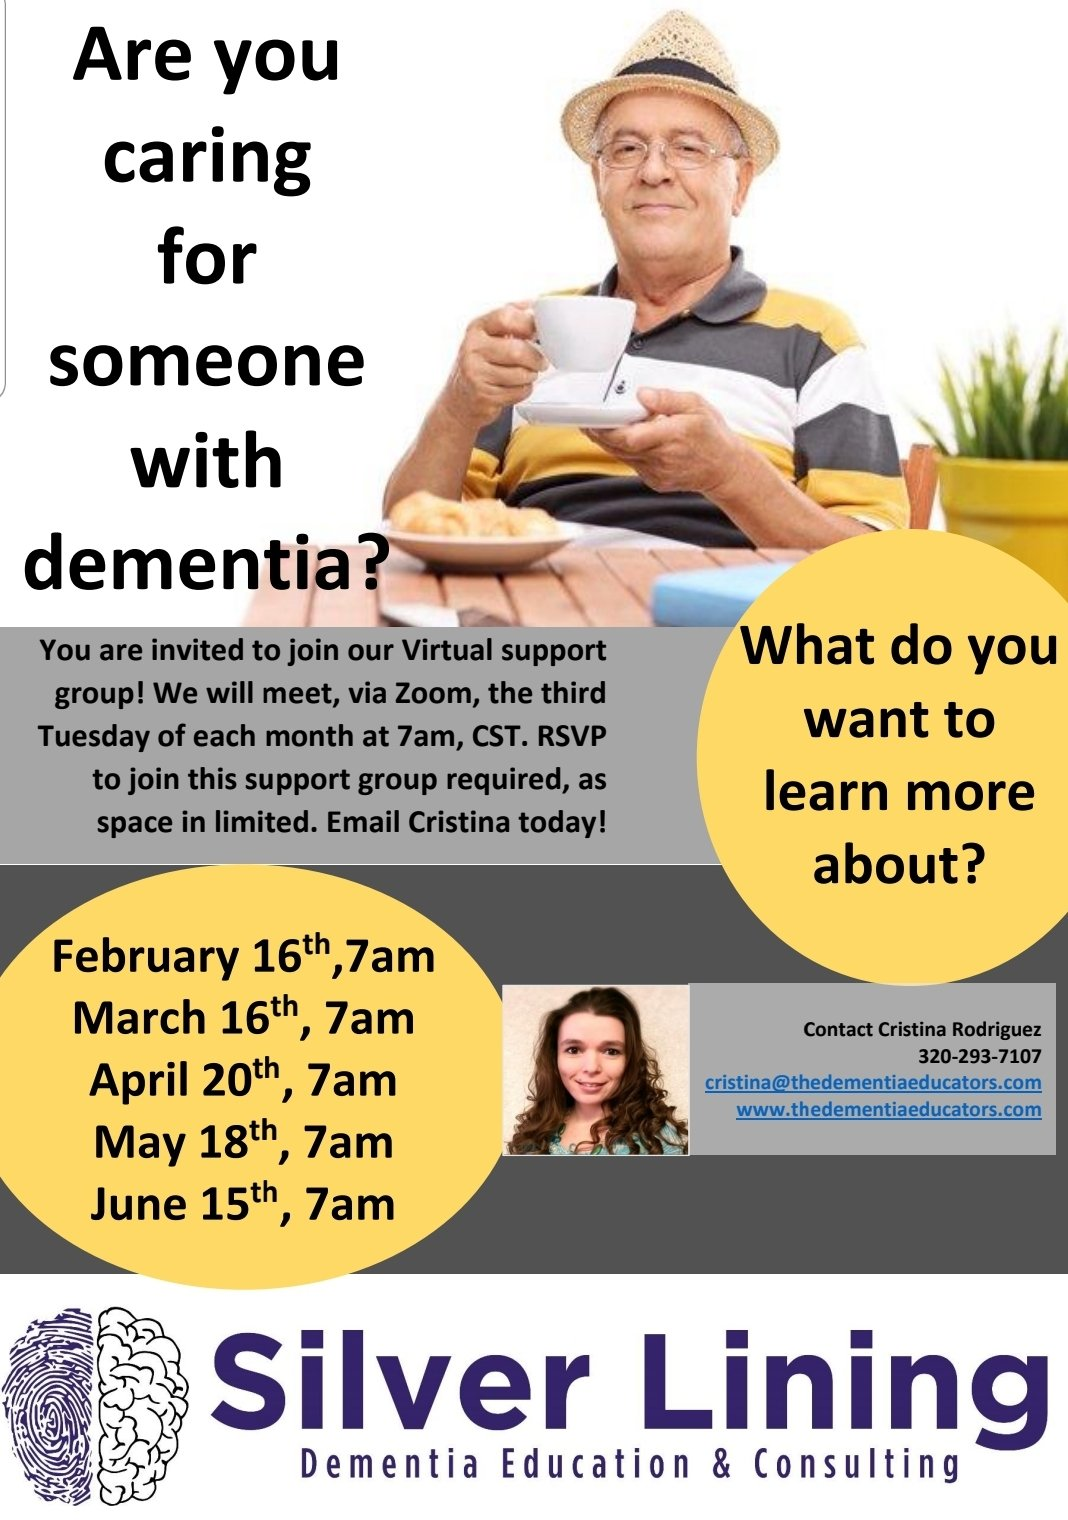 Silver Lining Dementia Education & Counseling